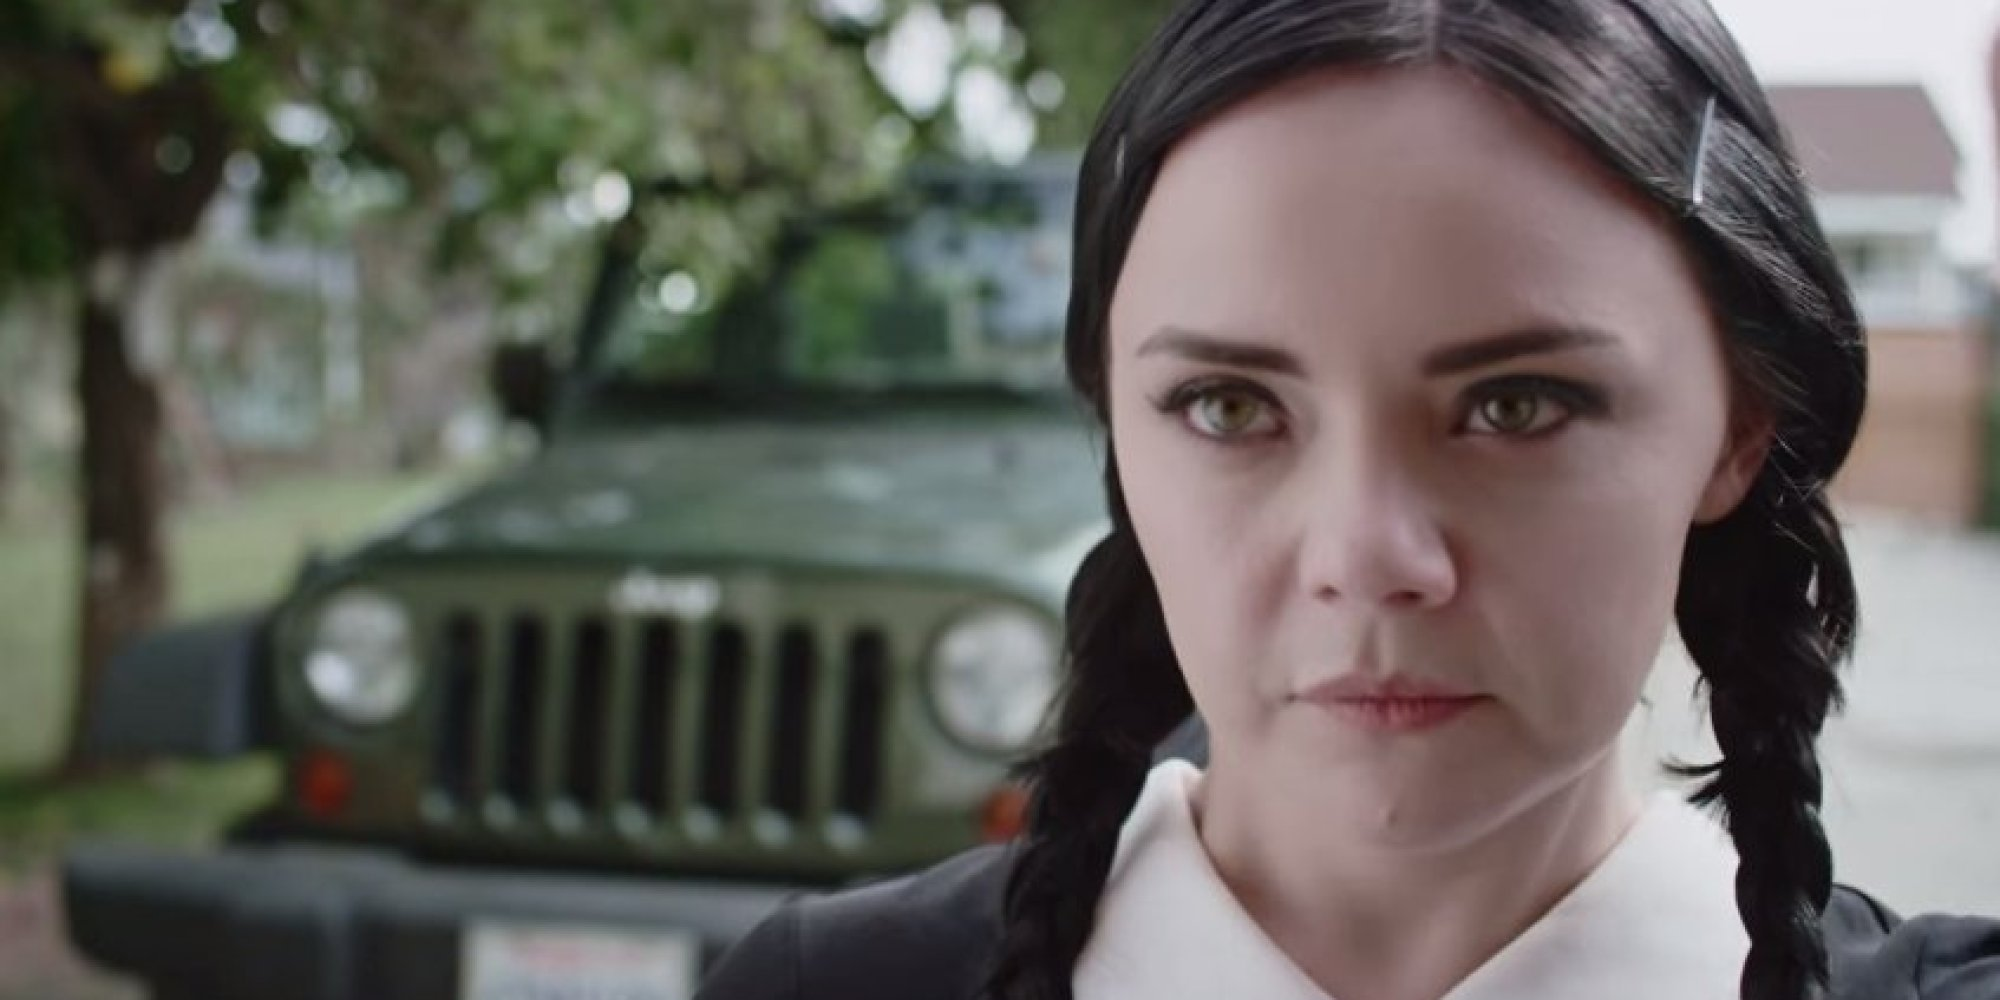 How Wednesday Addams Would React To Catcalling